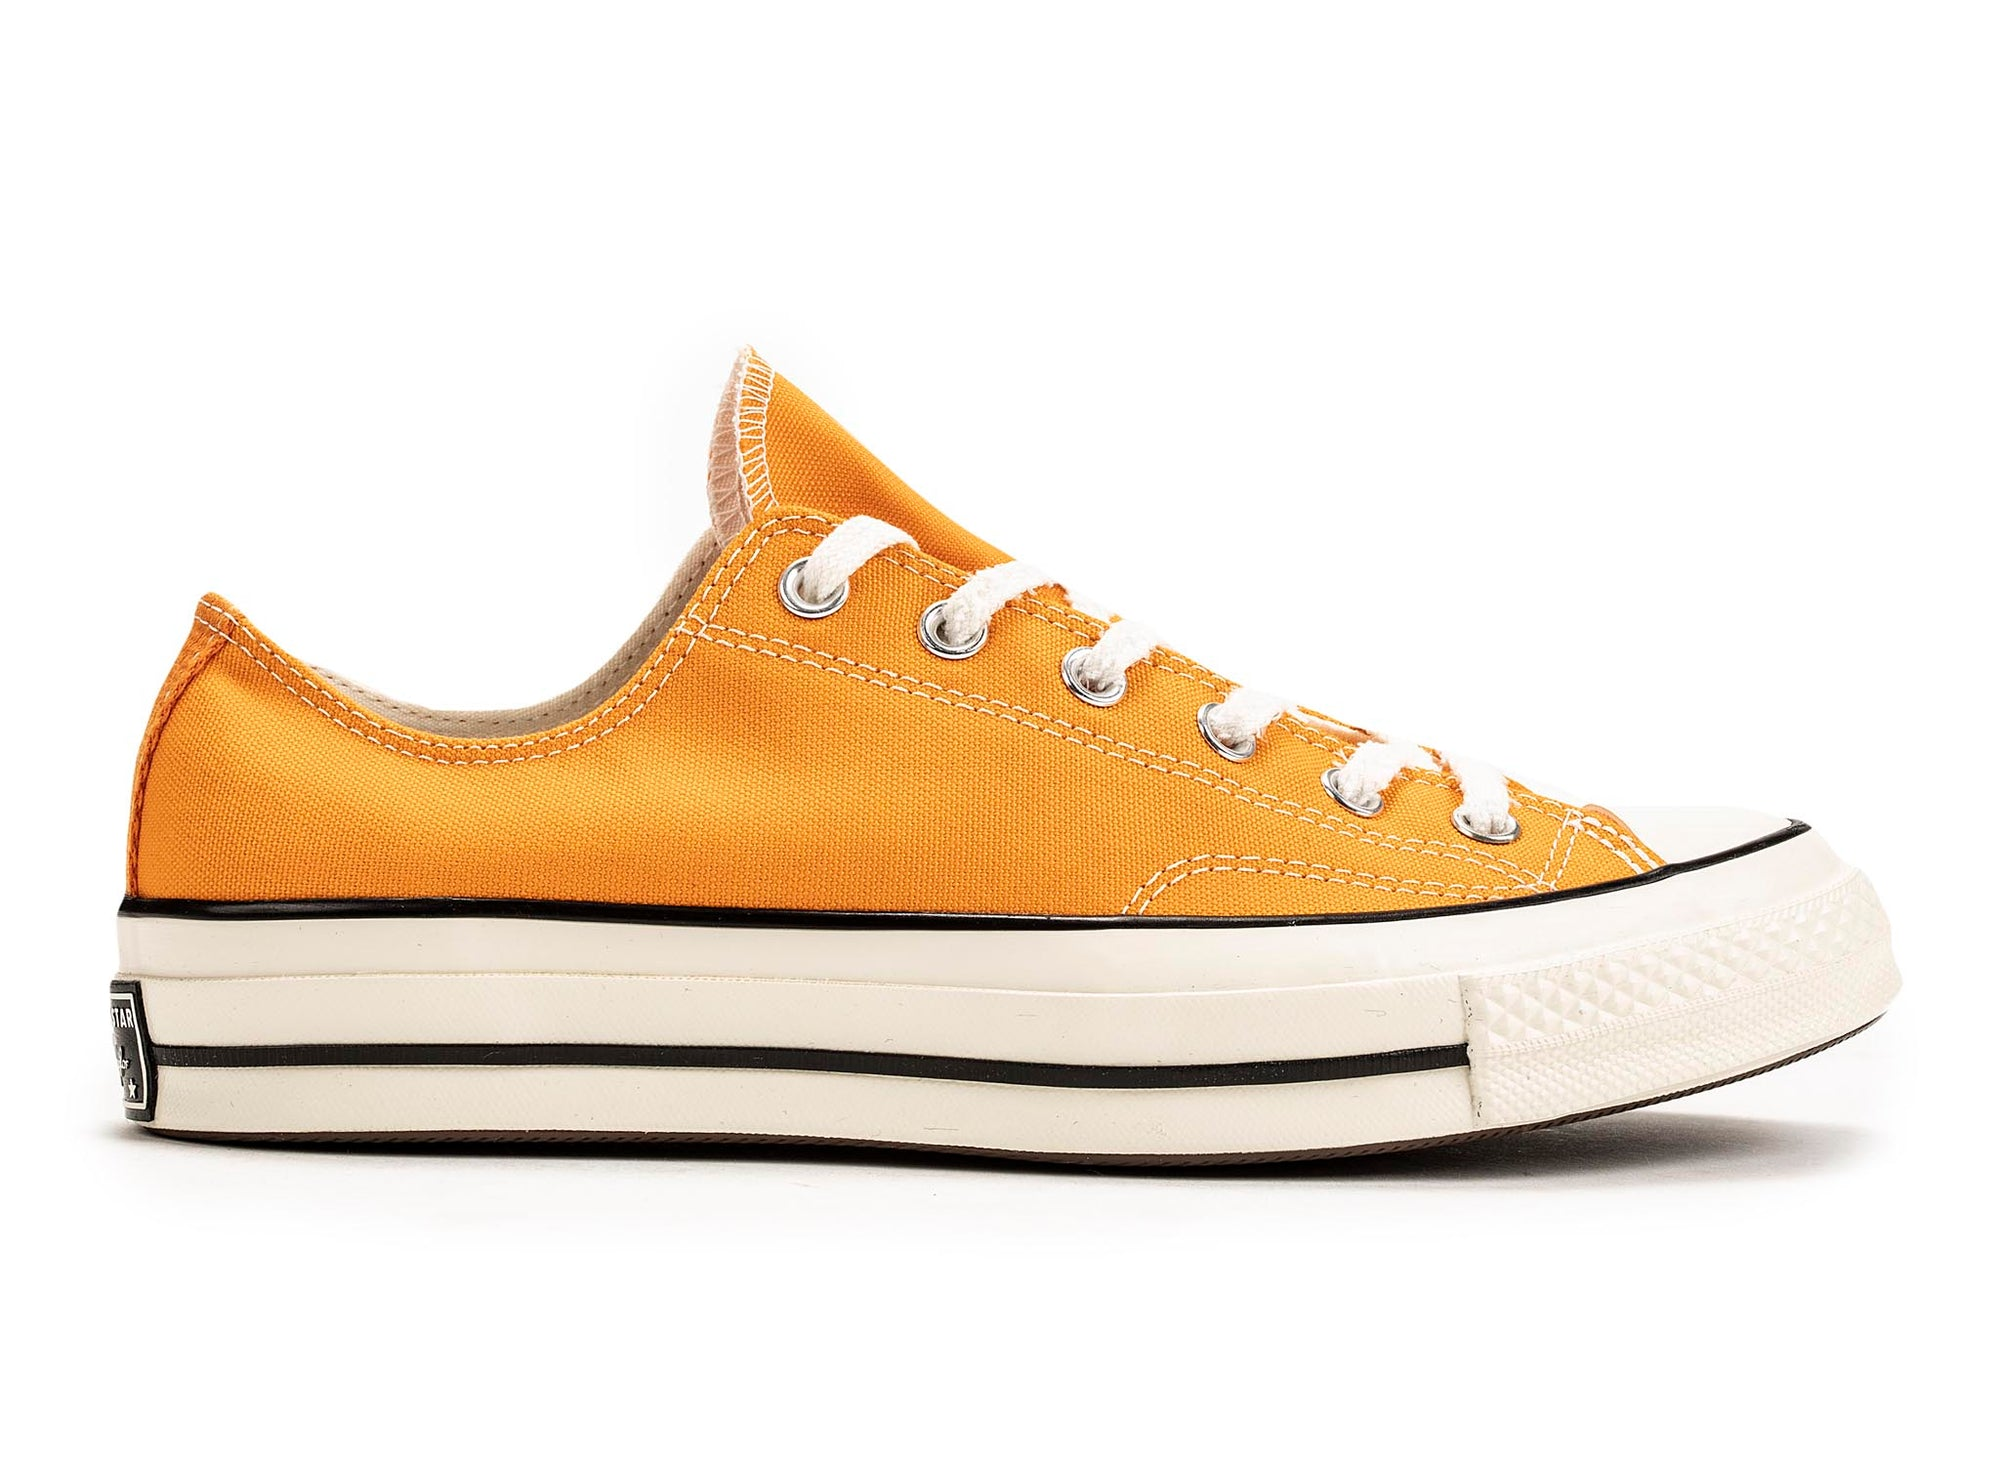 Converse Chuck 70 Ox 'Orange Rind'